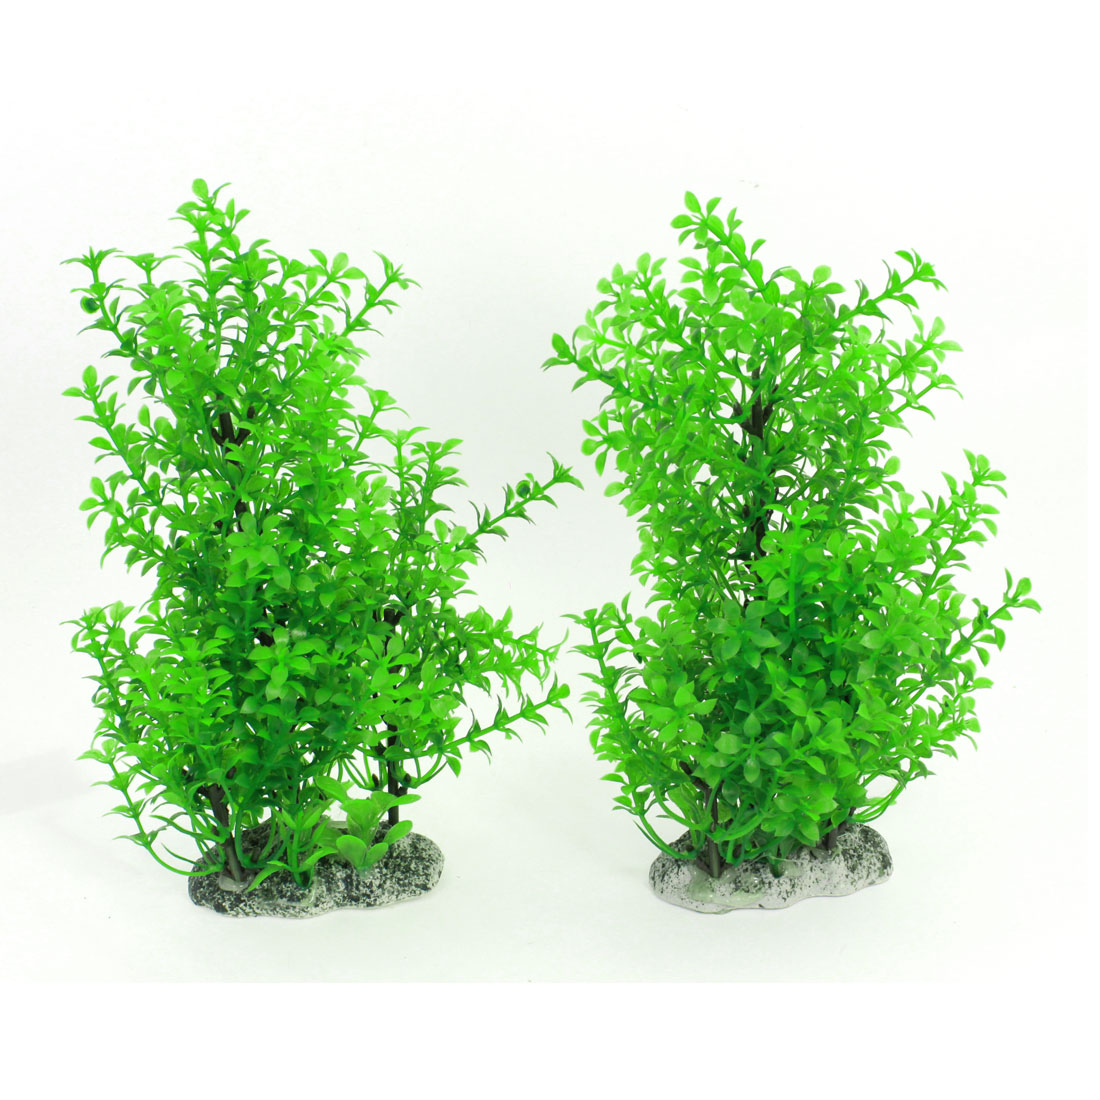 "Aquarium Plastic Simulation Water Grass Decor Green 9.1"" High 2 Pcs"